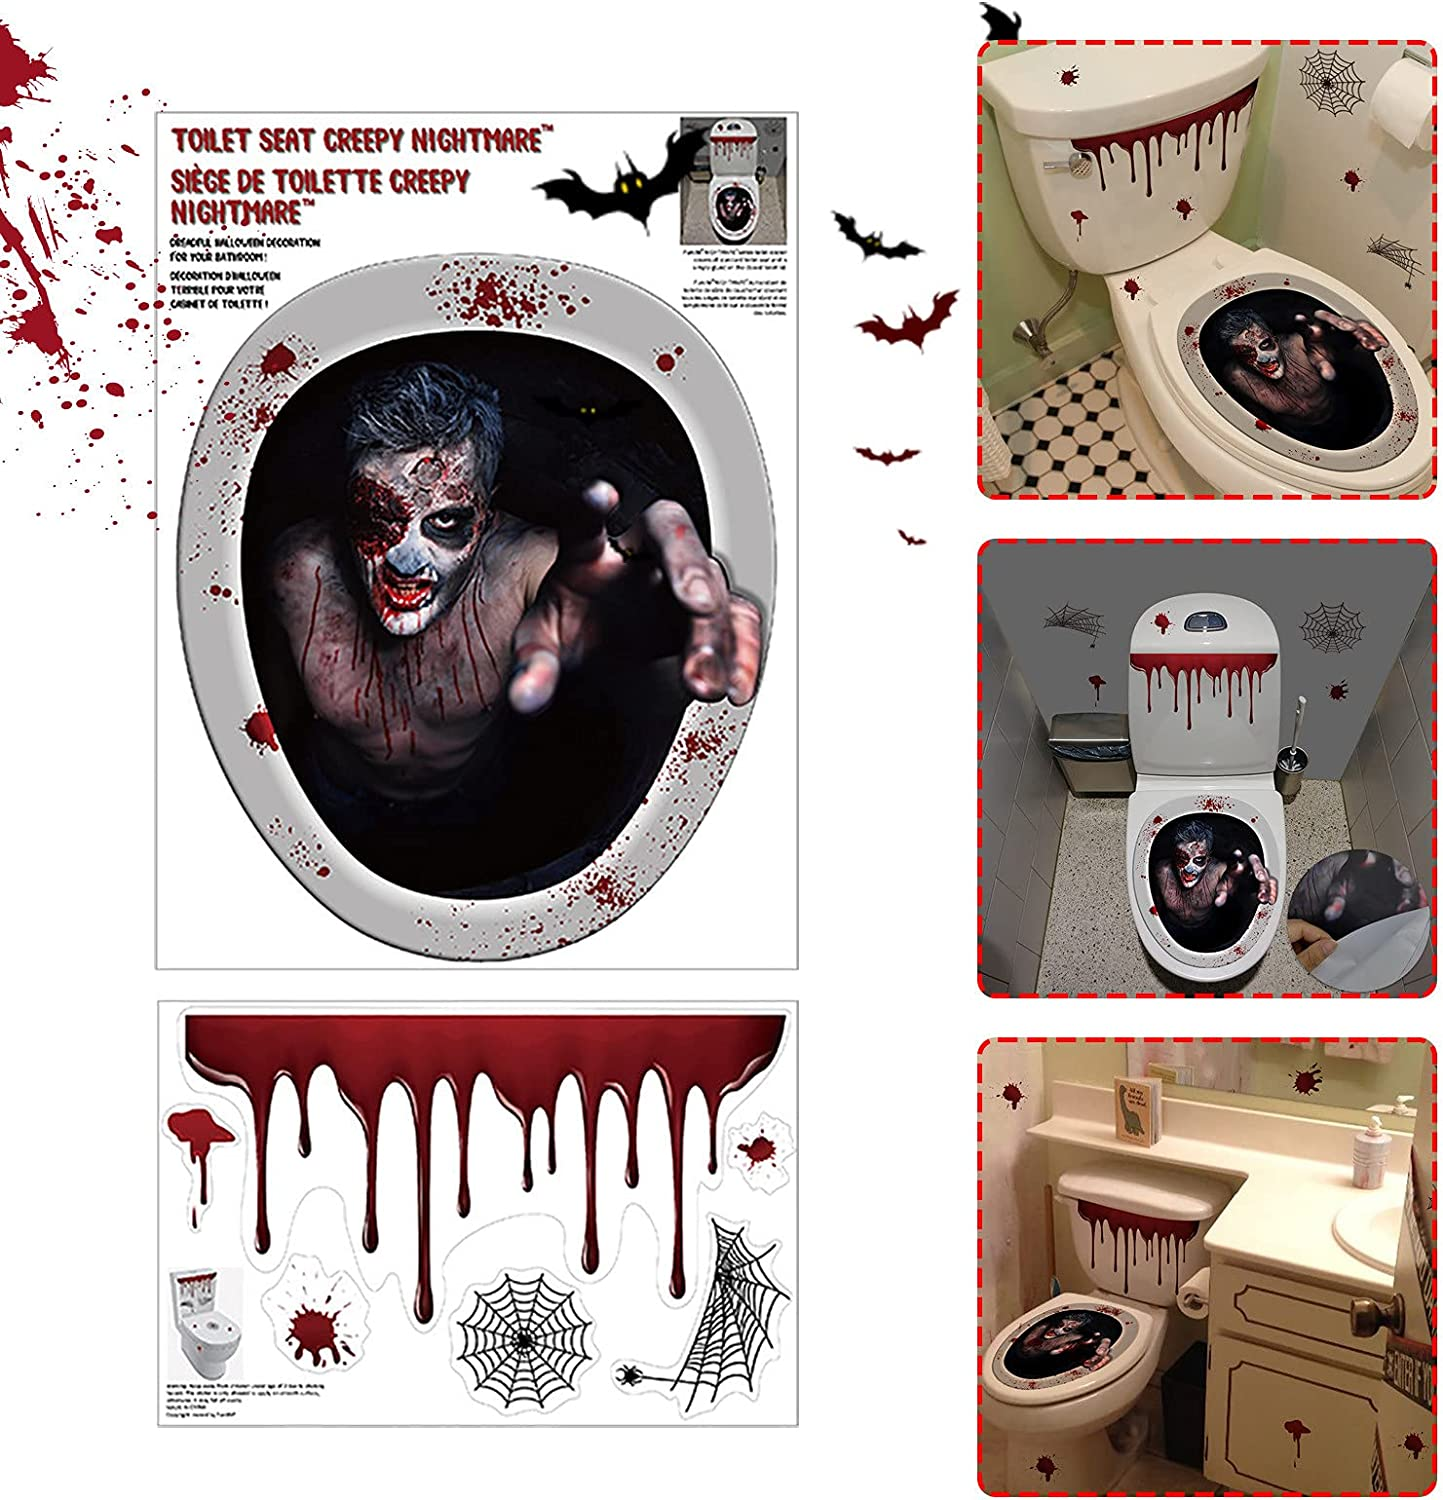 ZSWWang Halloween 3D Wall Stickers Special price for a limited time Decals Factory outlet Ceiling Floor Window